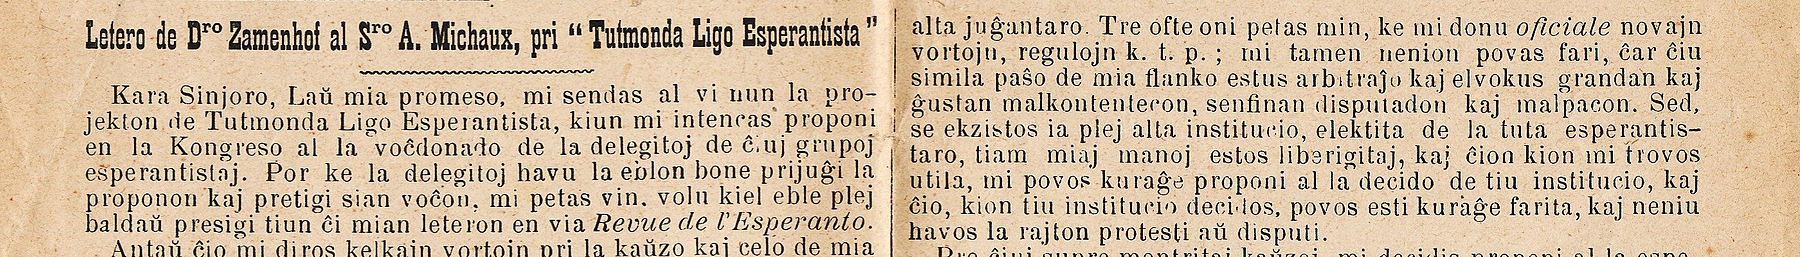 Excerpt from a Esperanto magazine from 1905 written by L.L. Zamenhof (Esperanto's inventor)